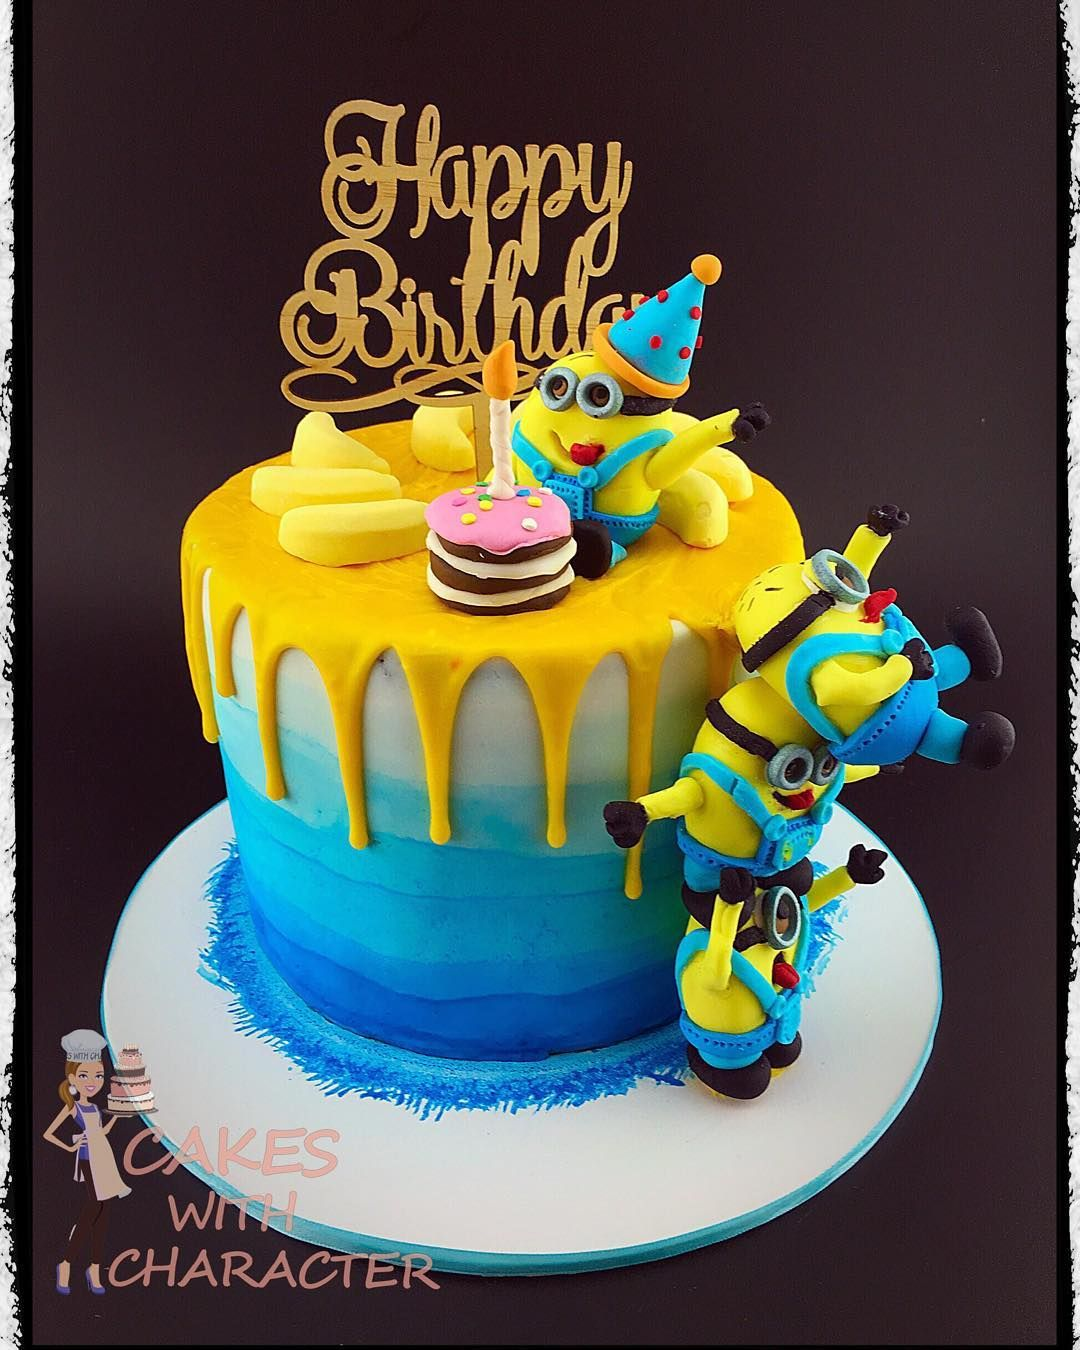 Remarkable Minion Drip Cake Cakes With Character With Images Minion Funny Birthday Cards Online Inifodamsfinfo